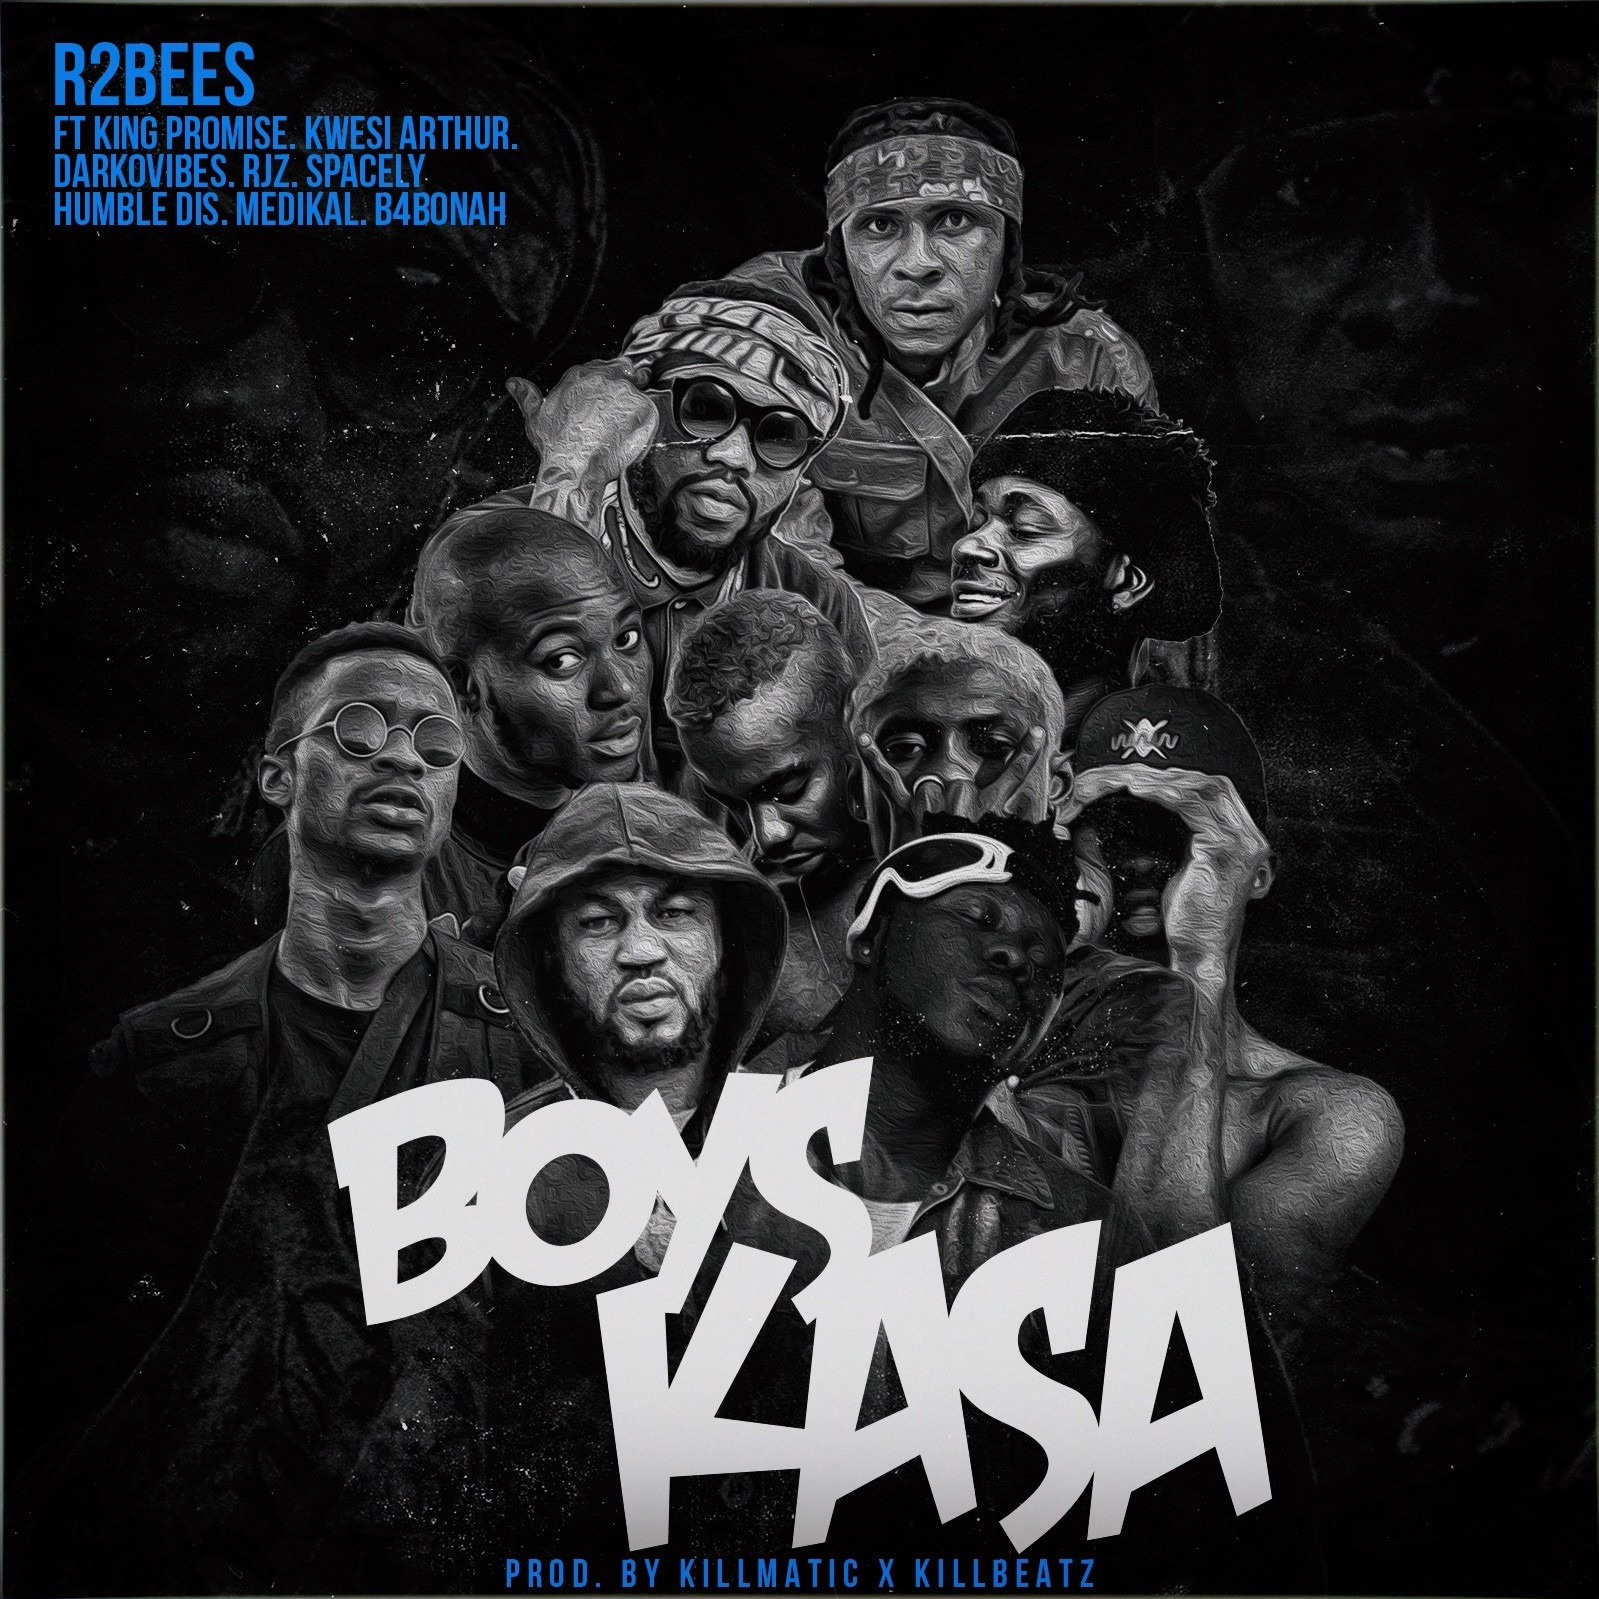 R2Bees drop music video for